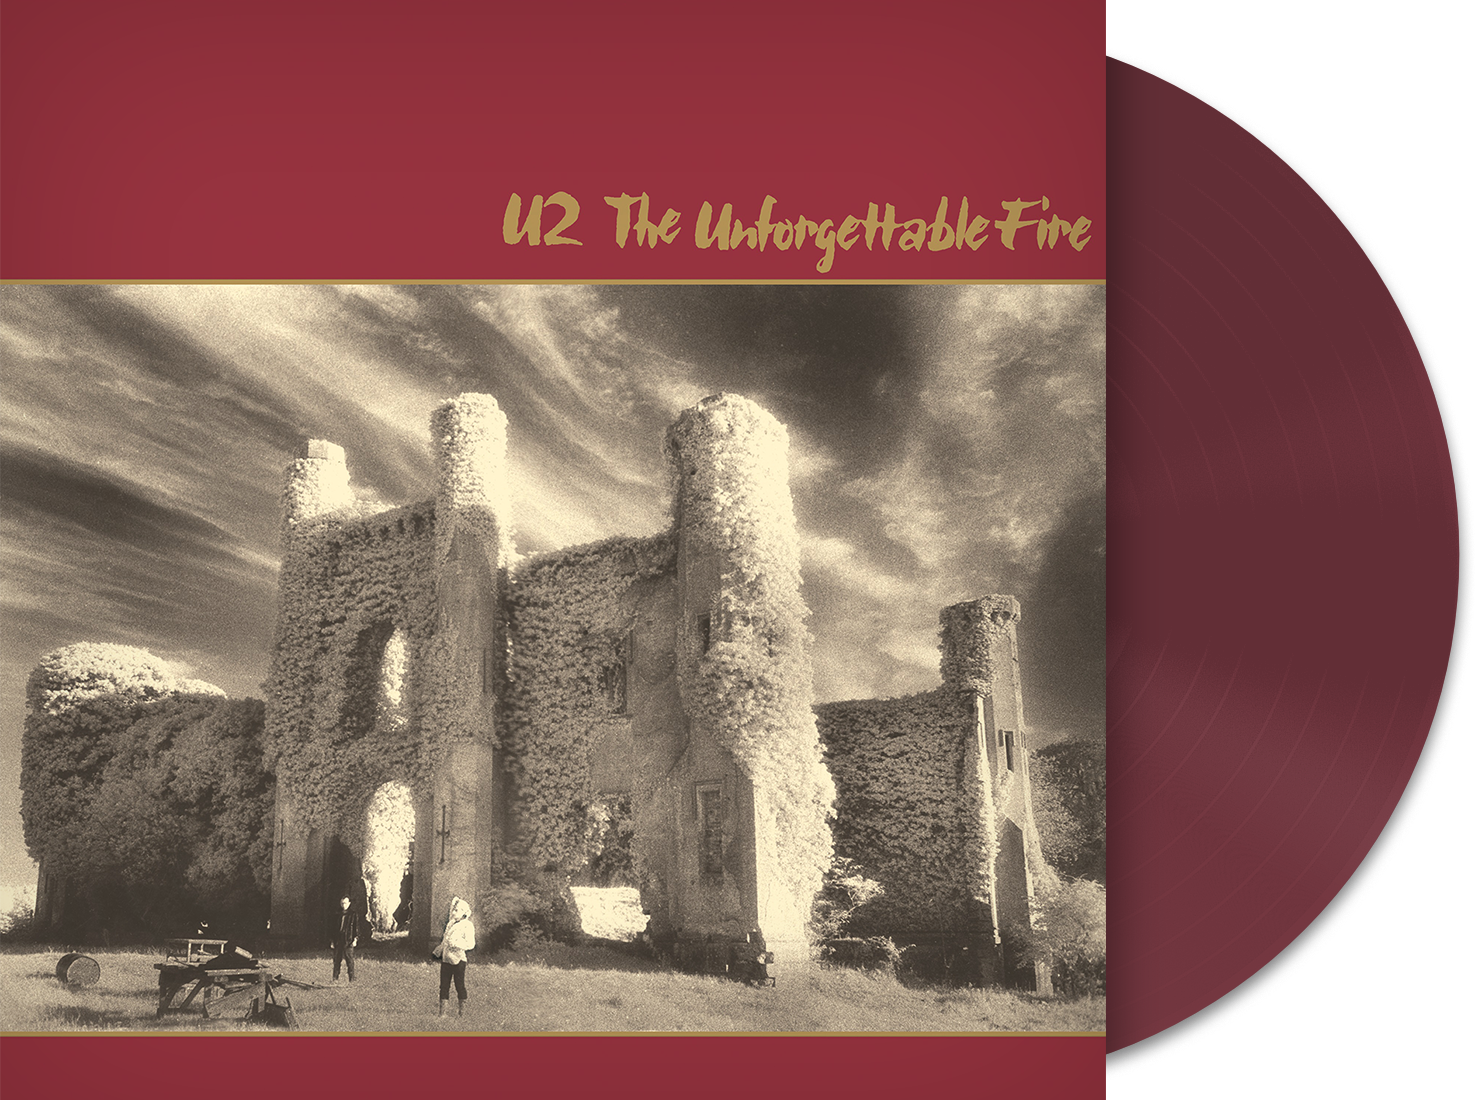 U2 - The Unforgettable Fire - New 2019 Record LP Sunrise Records Exclusive  Red Wine Colored Vinyl Europe Import - Rock